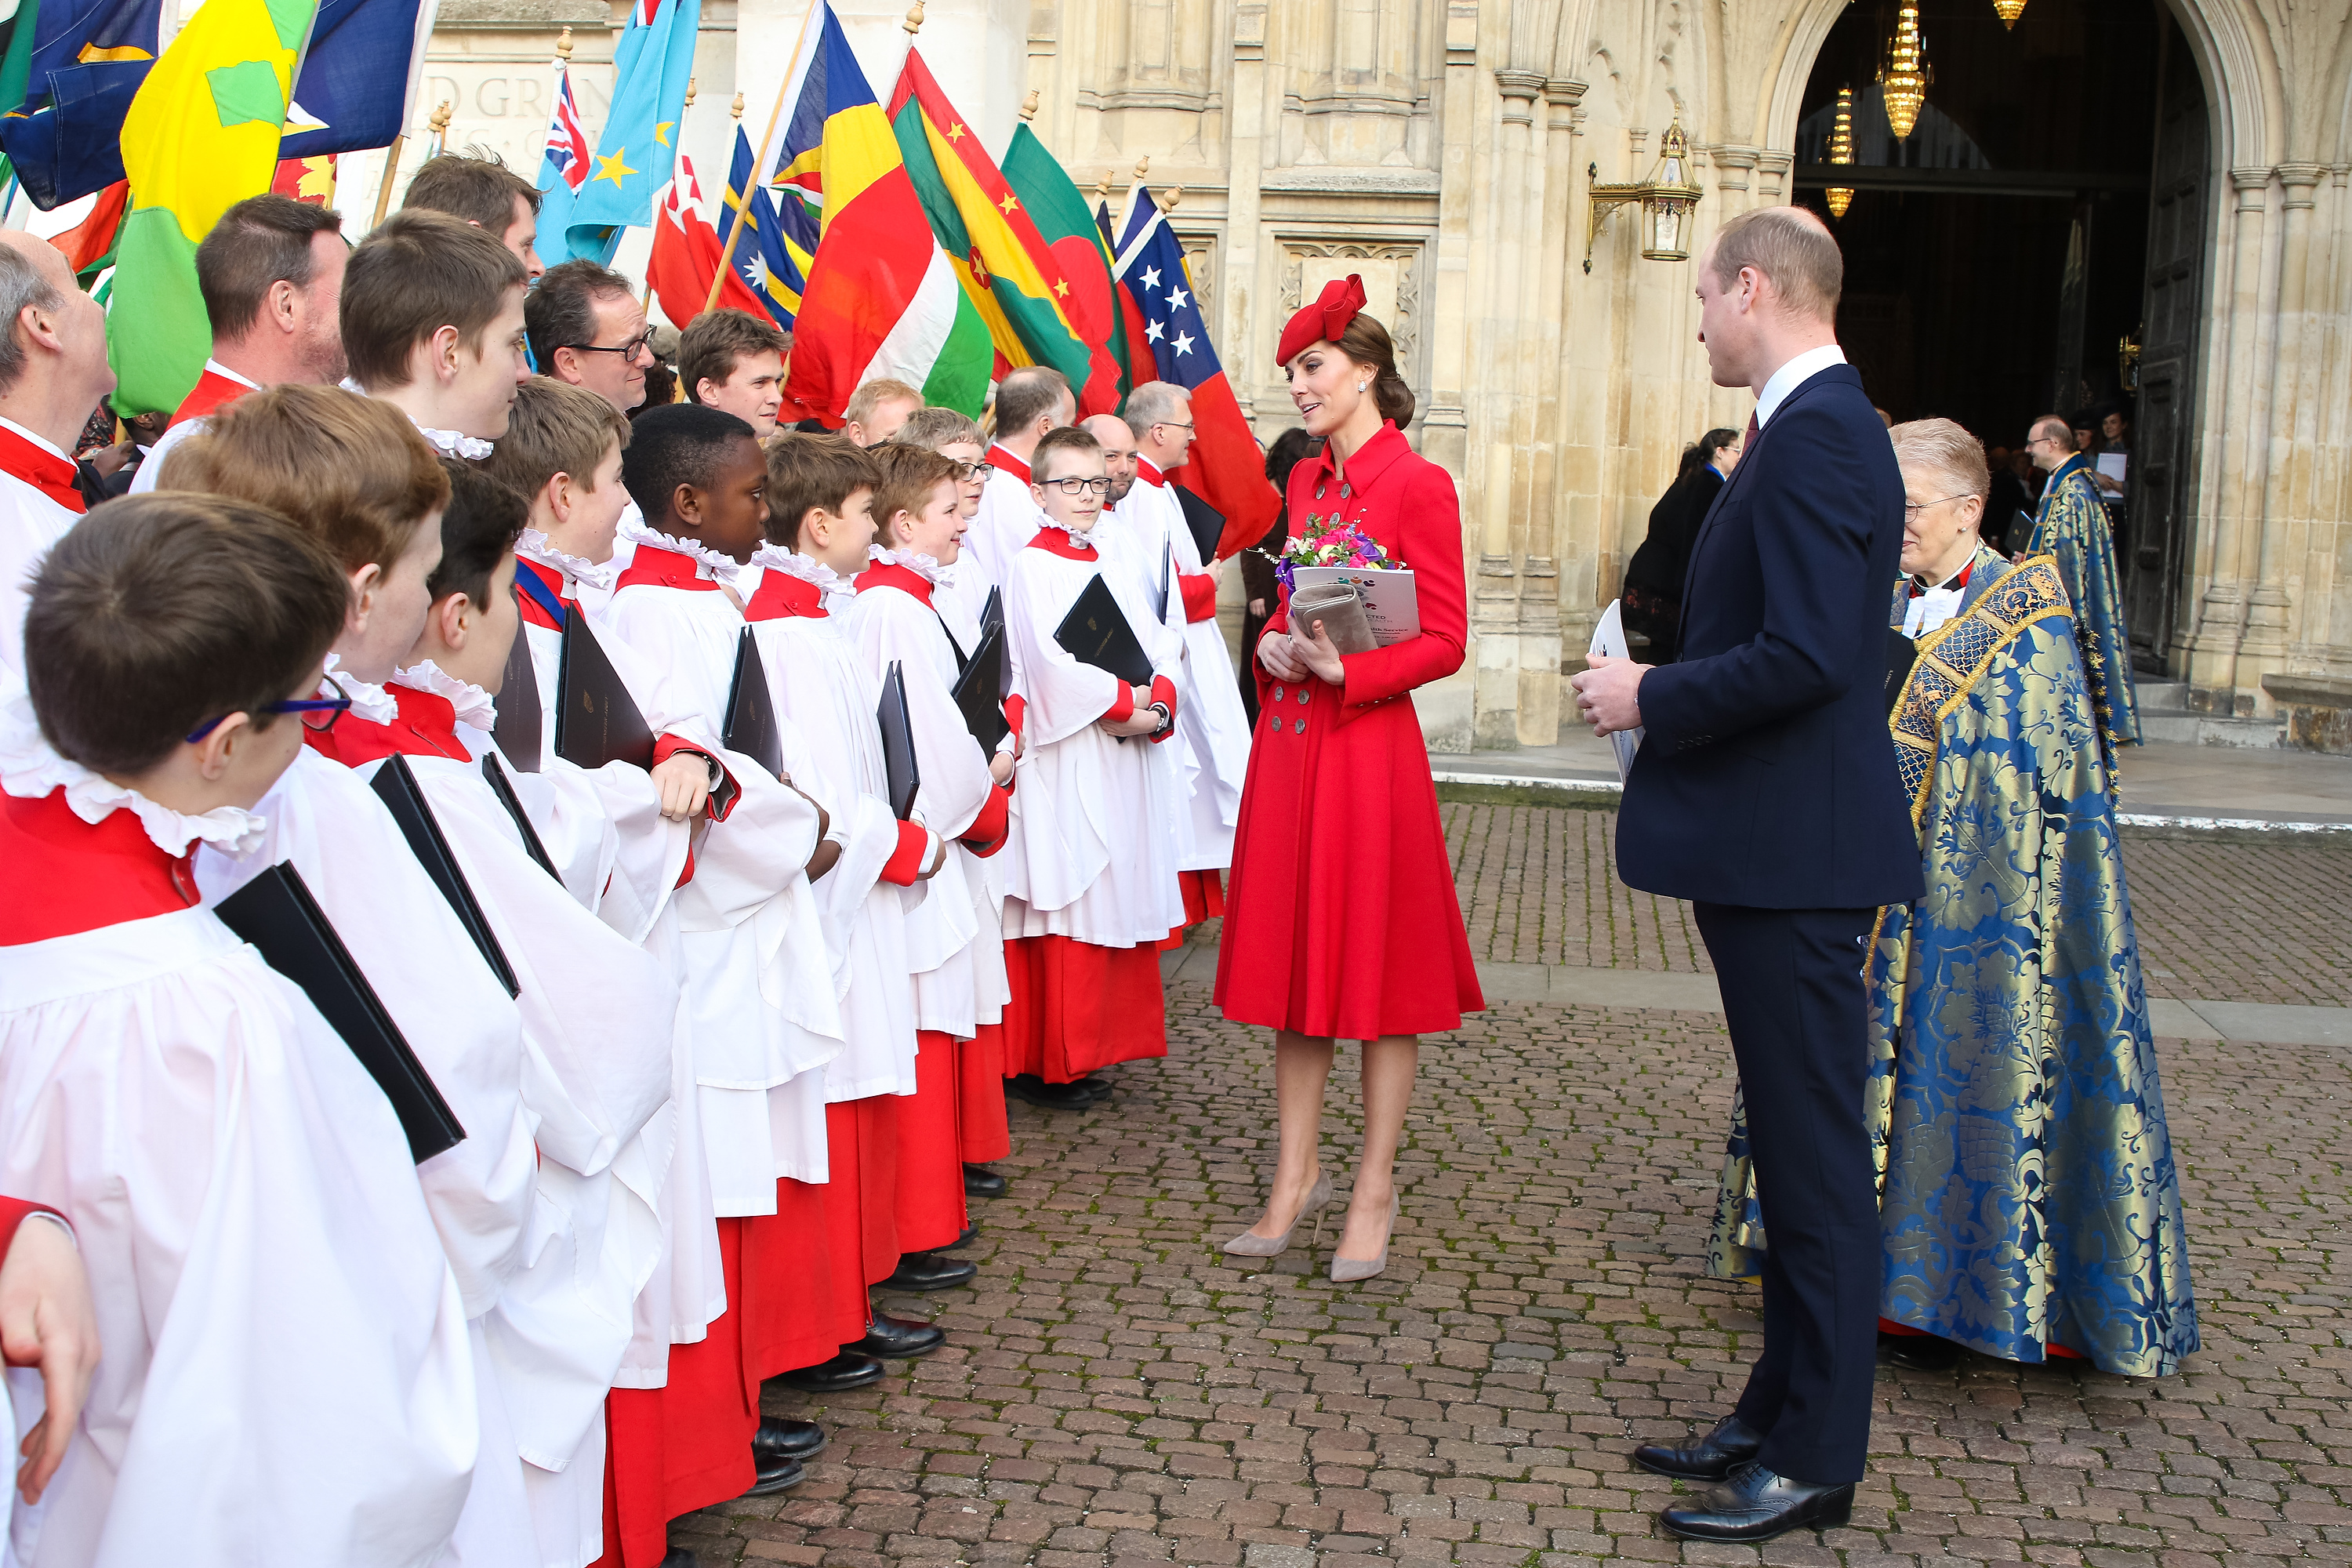 Her Majesty The Queen, accompanied by Members of the Royal Family attends The Commonwealth Service: A Celebration of the Commonwealth at Westminster Abbey.